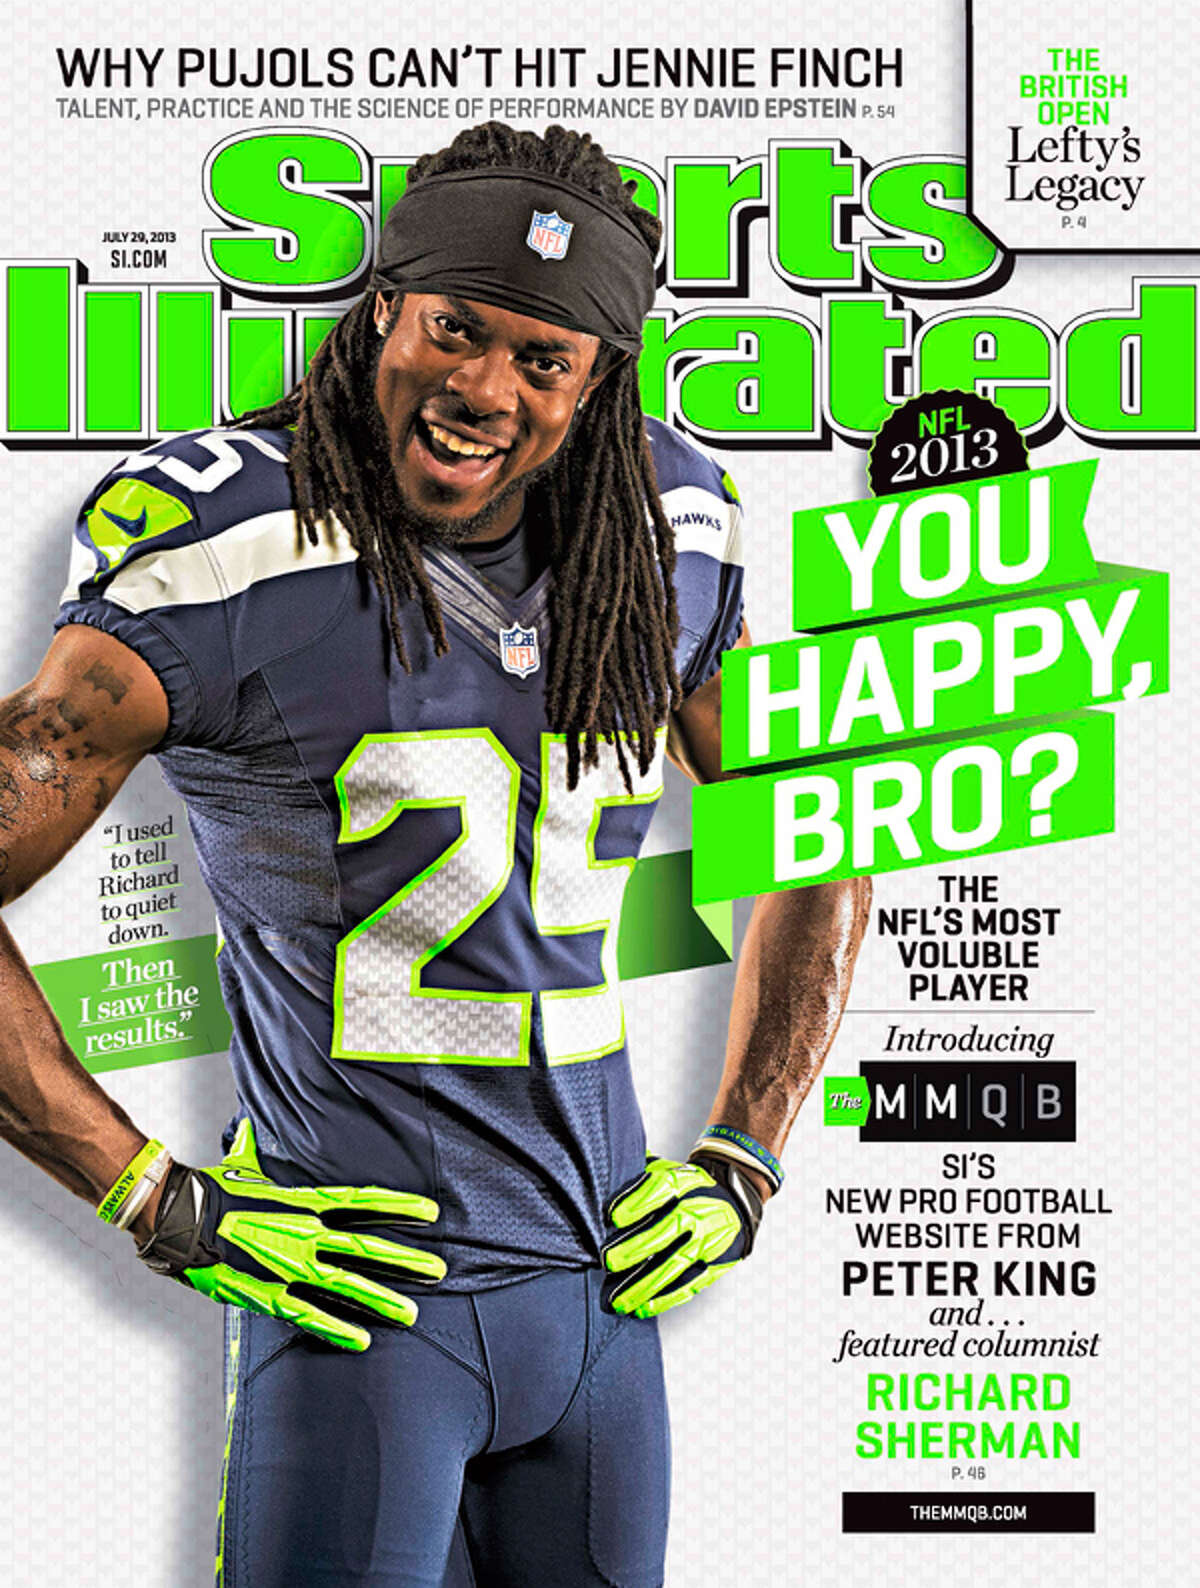 Richard Sherman was featured on the cover of the July 29 issue of Sports Illustrated.